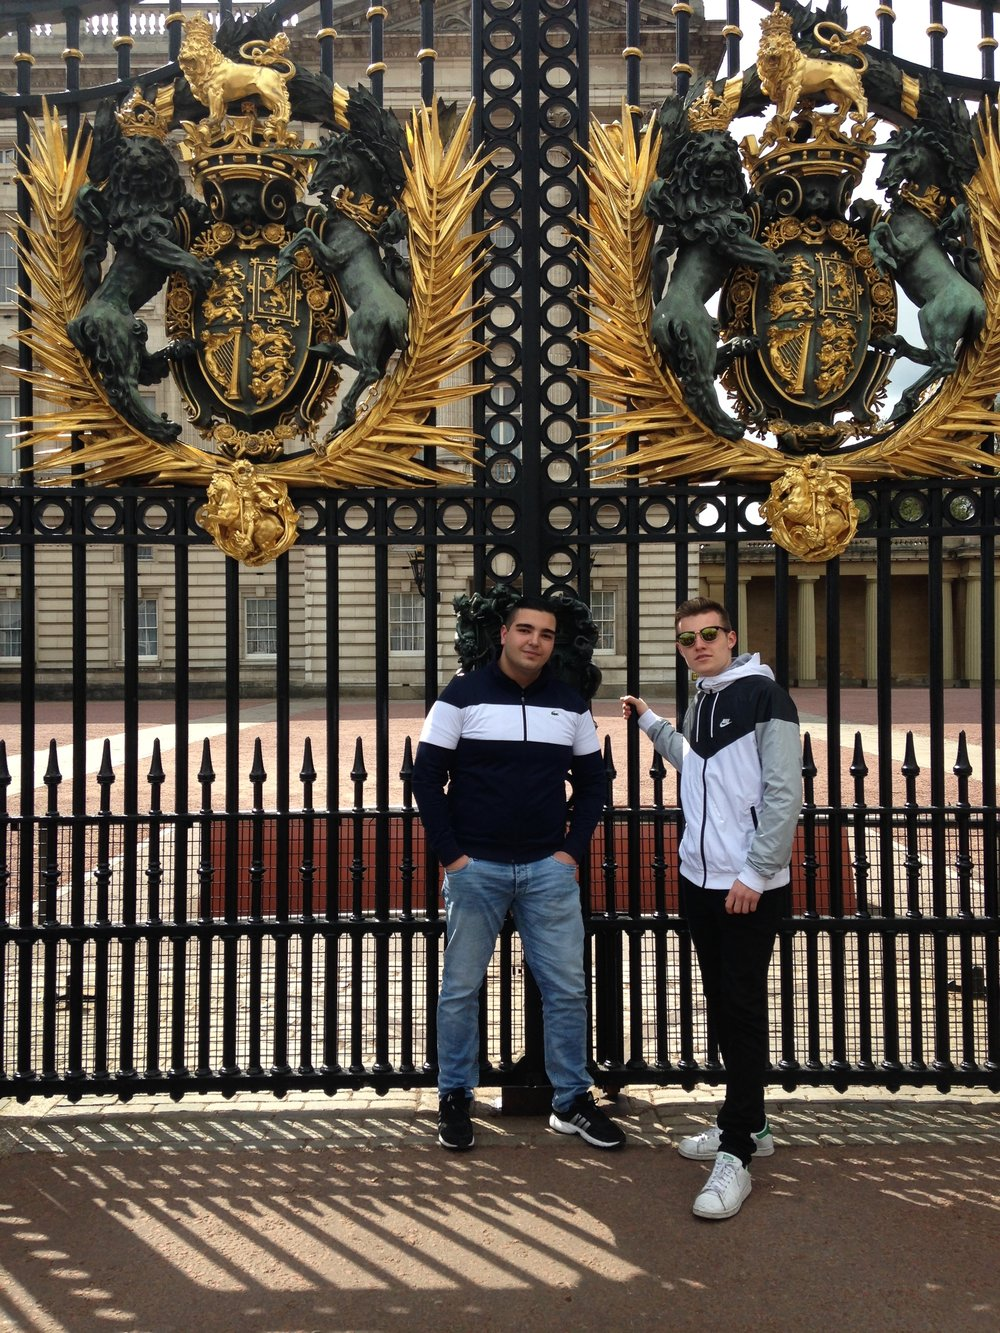 Gökai with a friend outside Buckingham Palace.